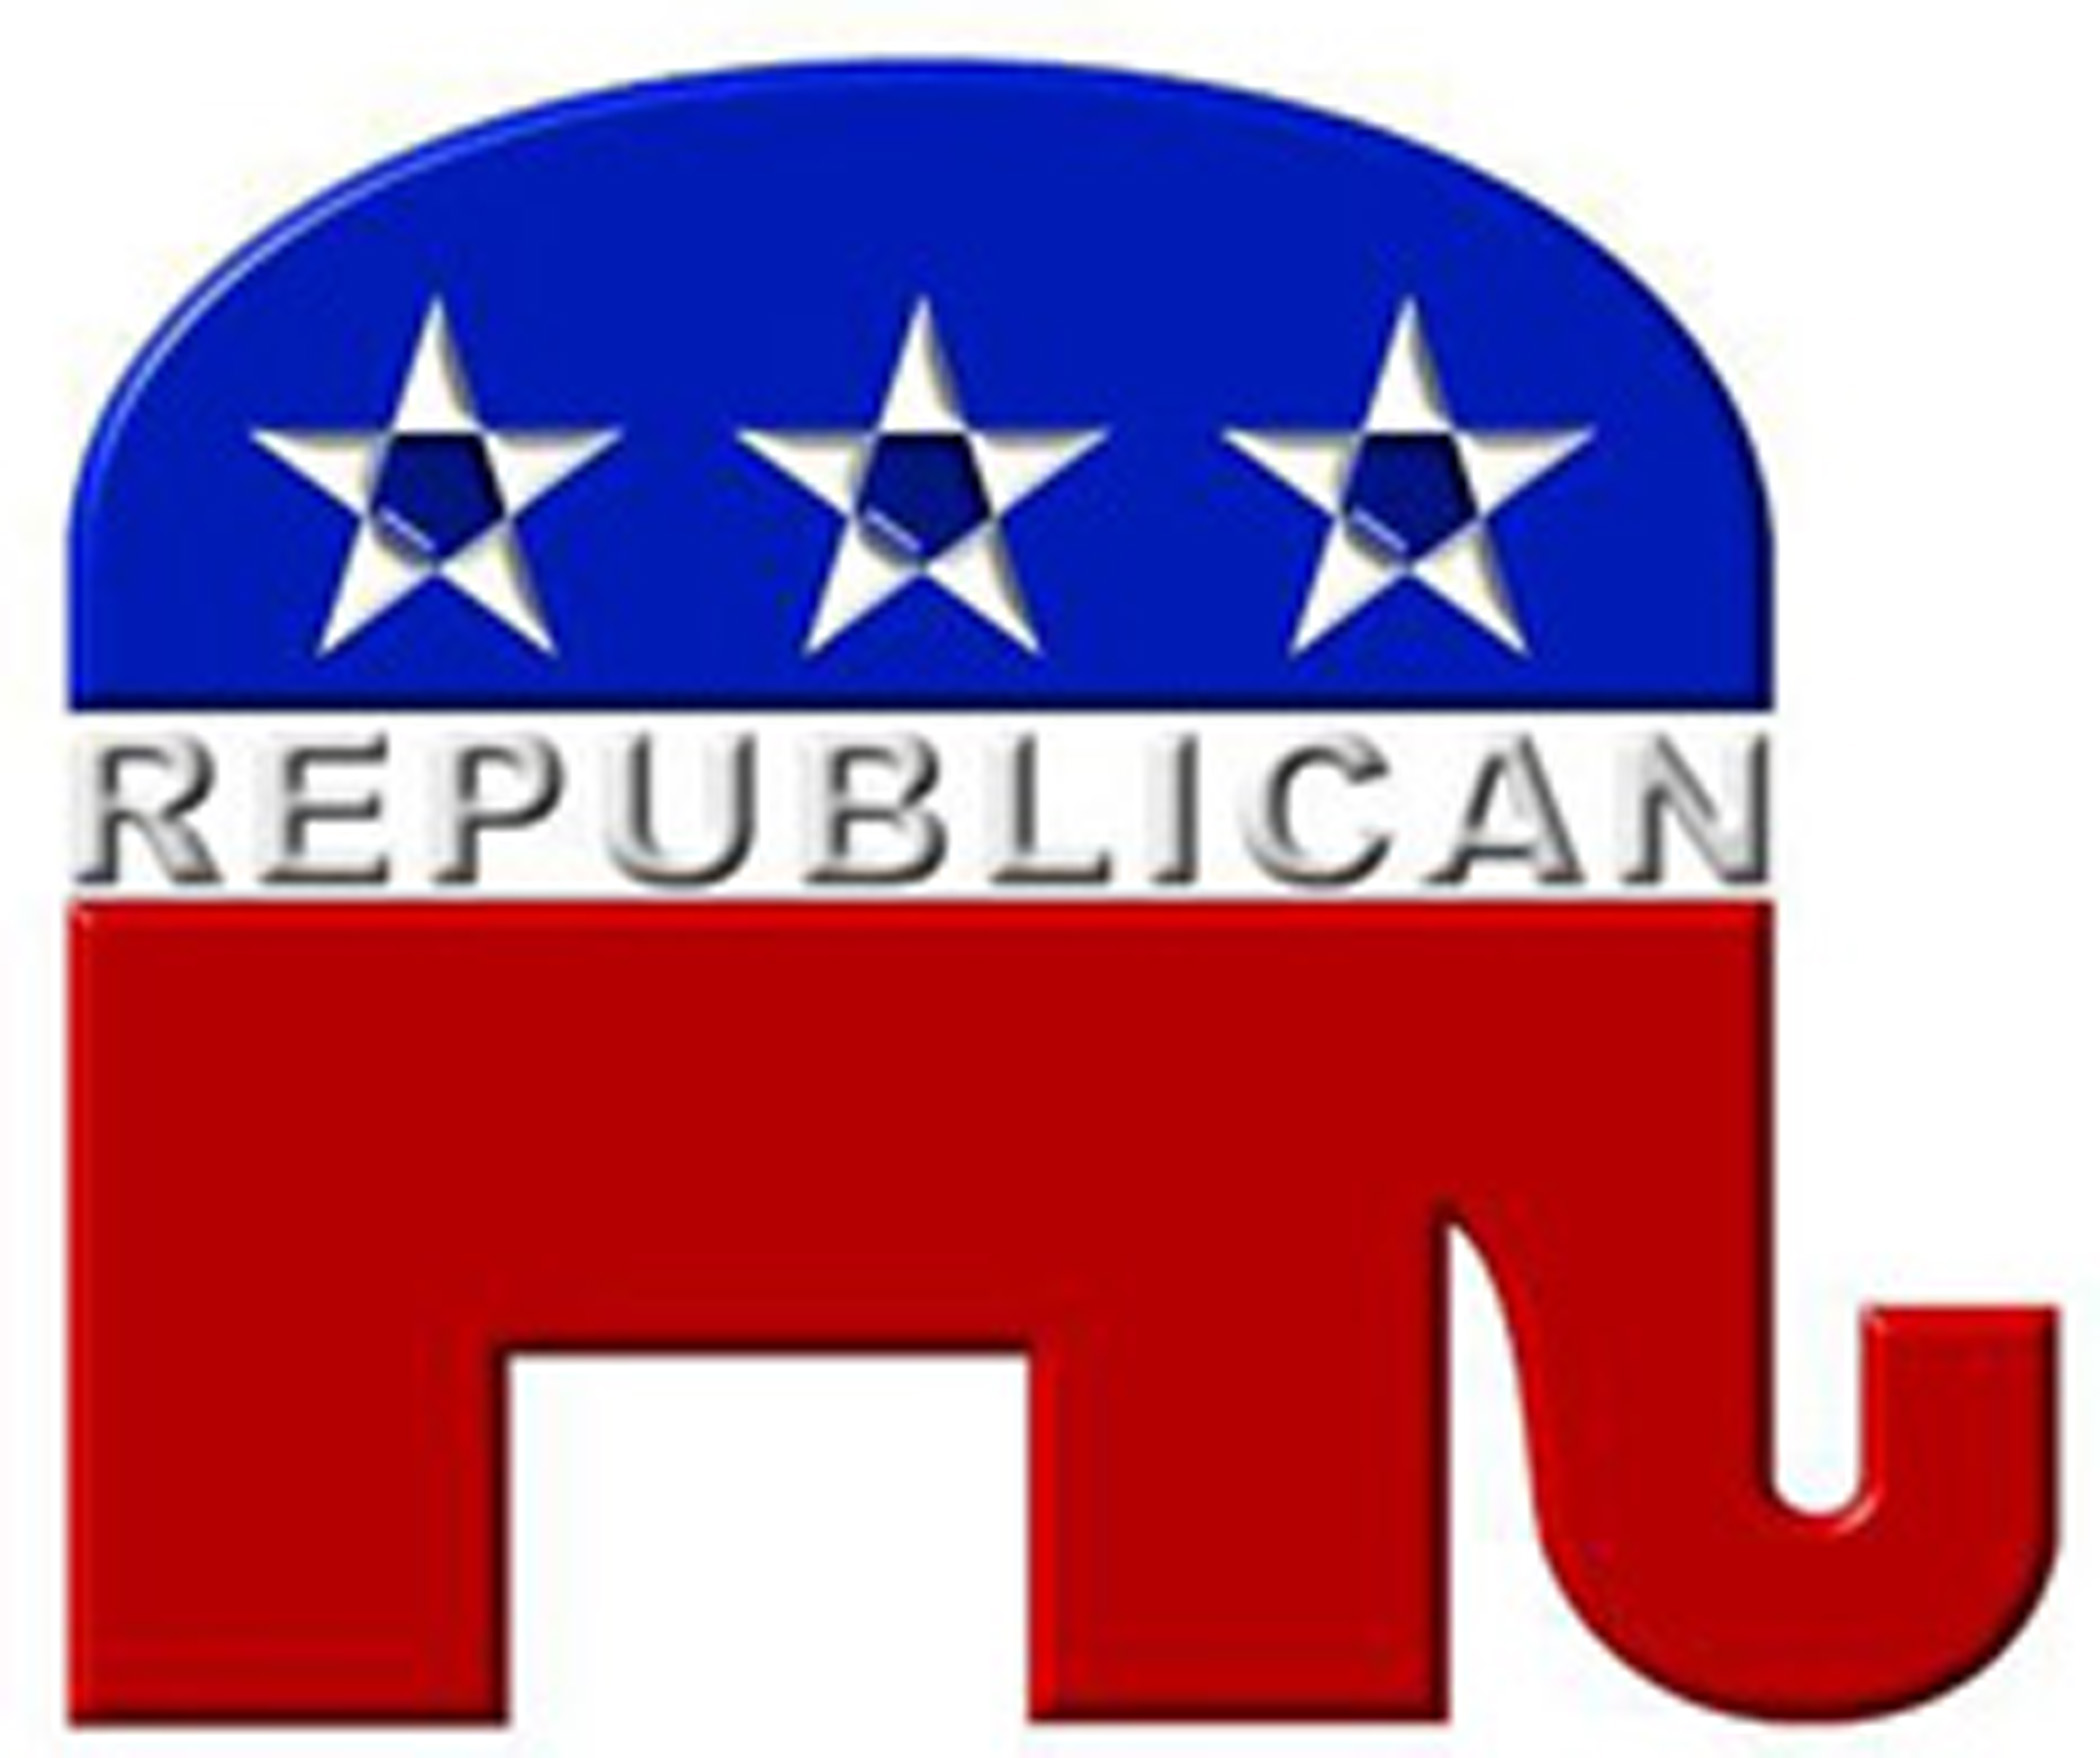 Republican party elephant clipart.